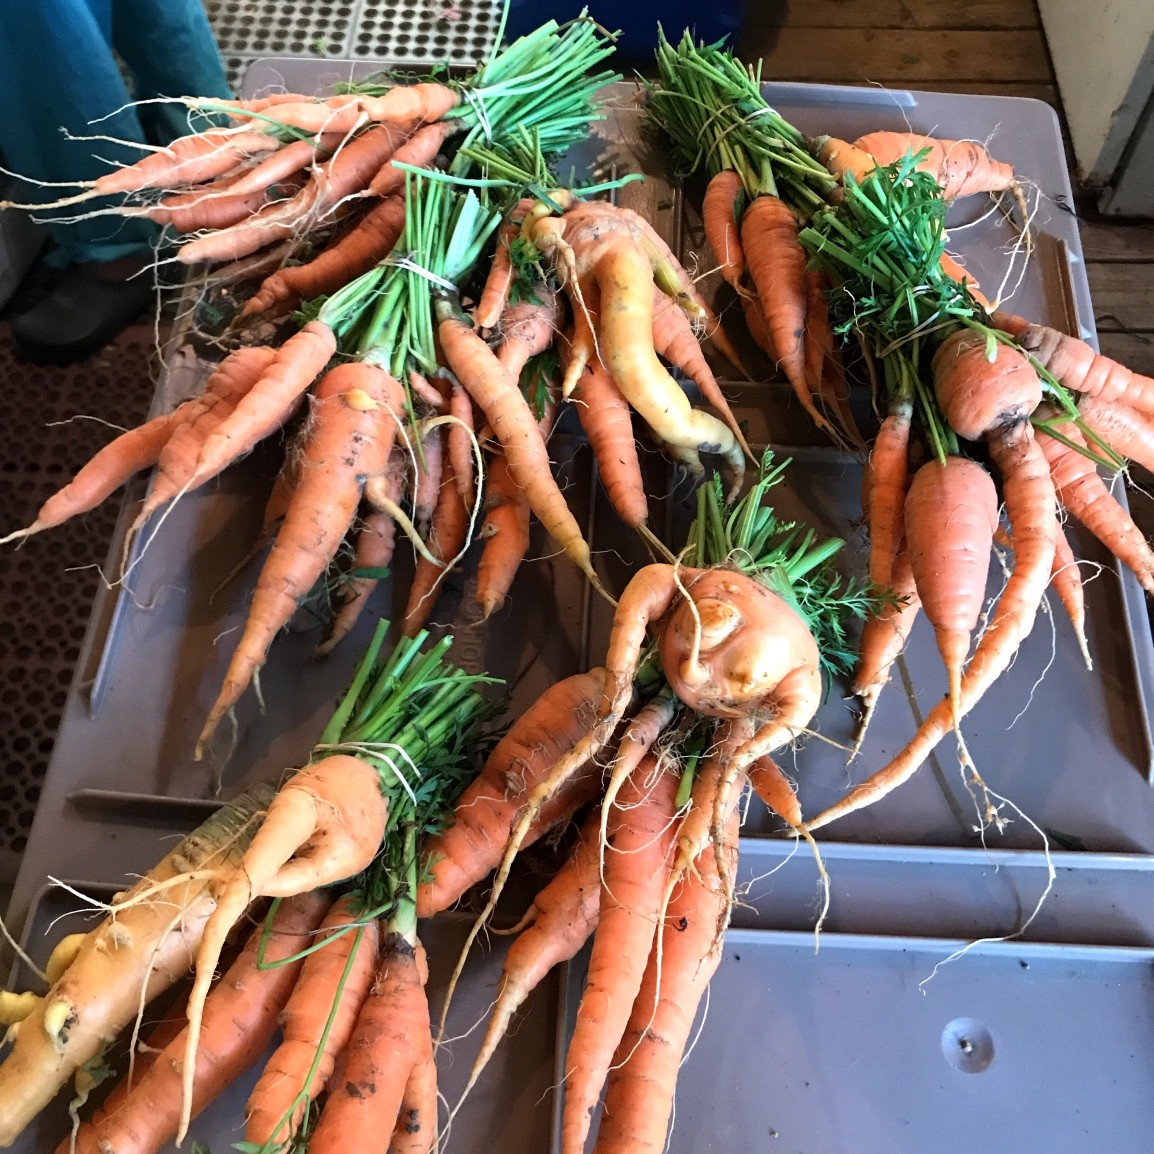 Seven bunches of carrots with odd shapes. Farmstand carrots are not like store-bought carrots.